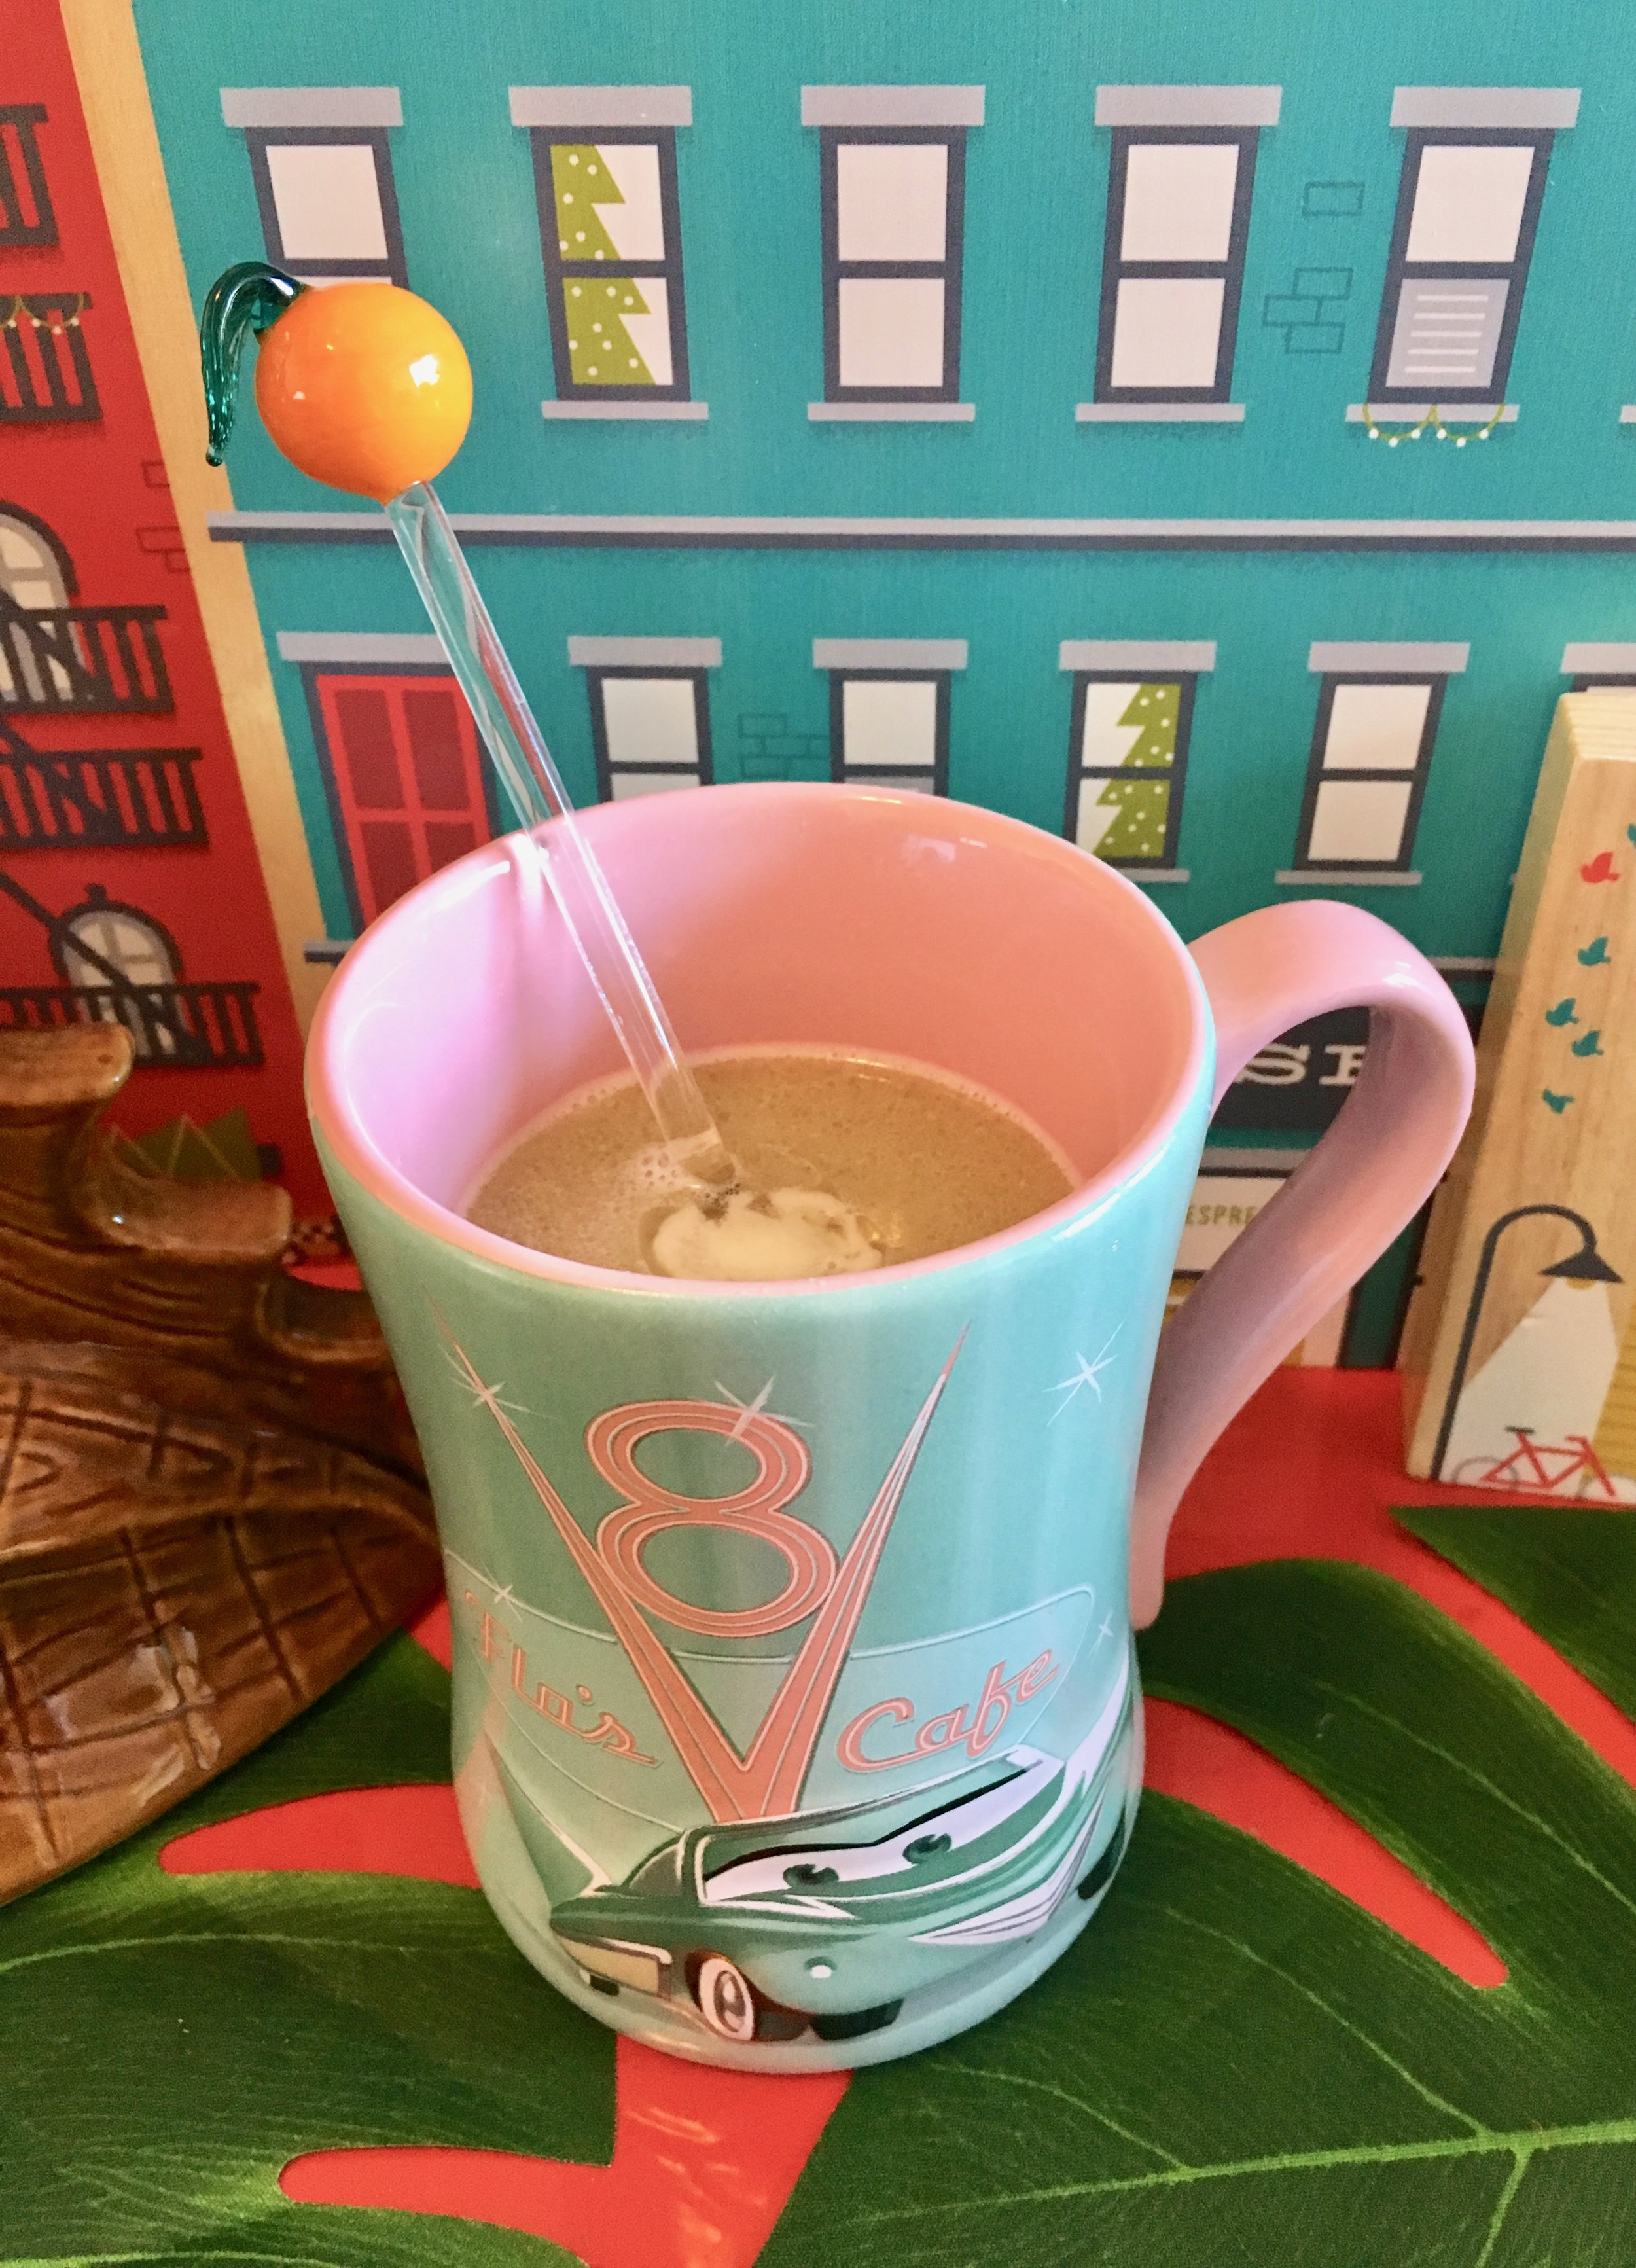 pub-and-prow-hot-buttered-rum.jpg